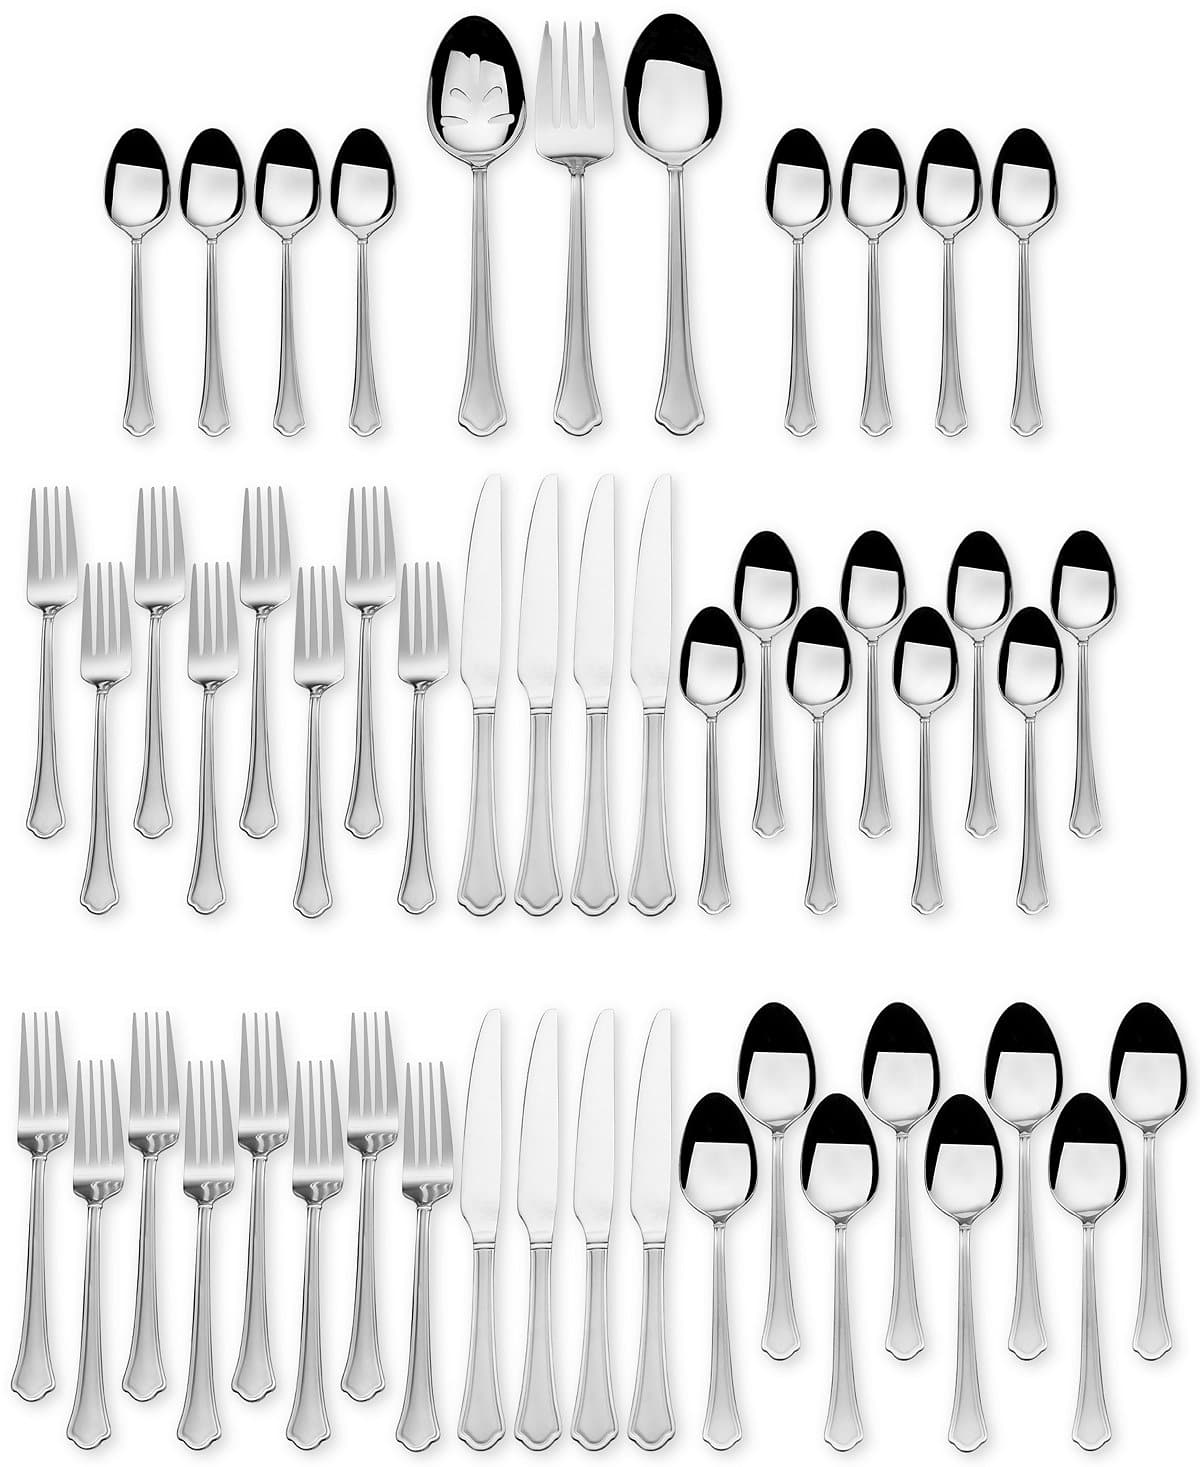 51pc Stainless Flatware Sets $30 Shipped $29.99